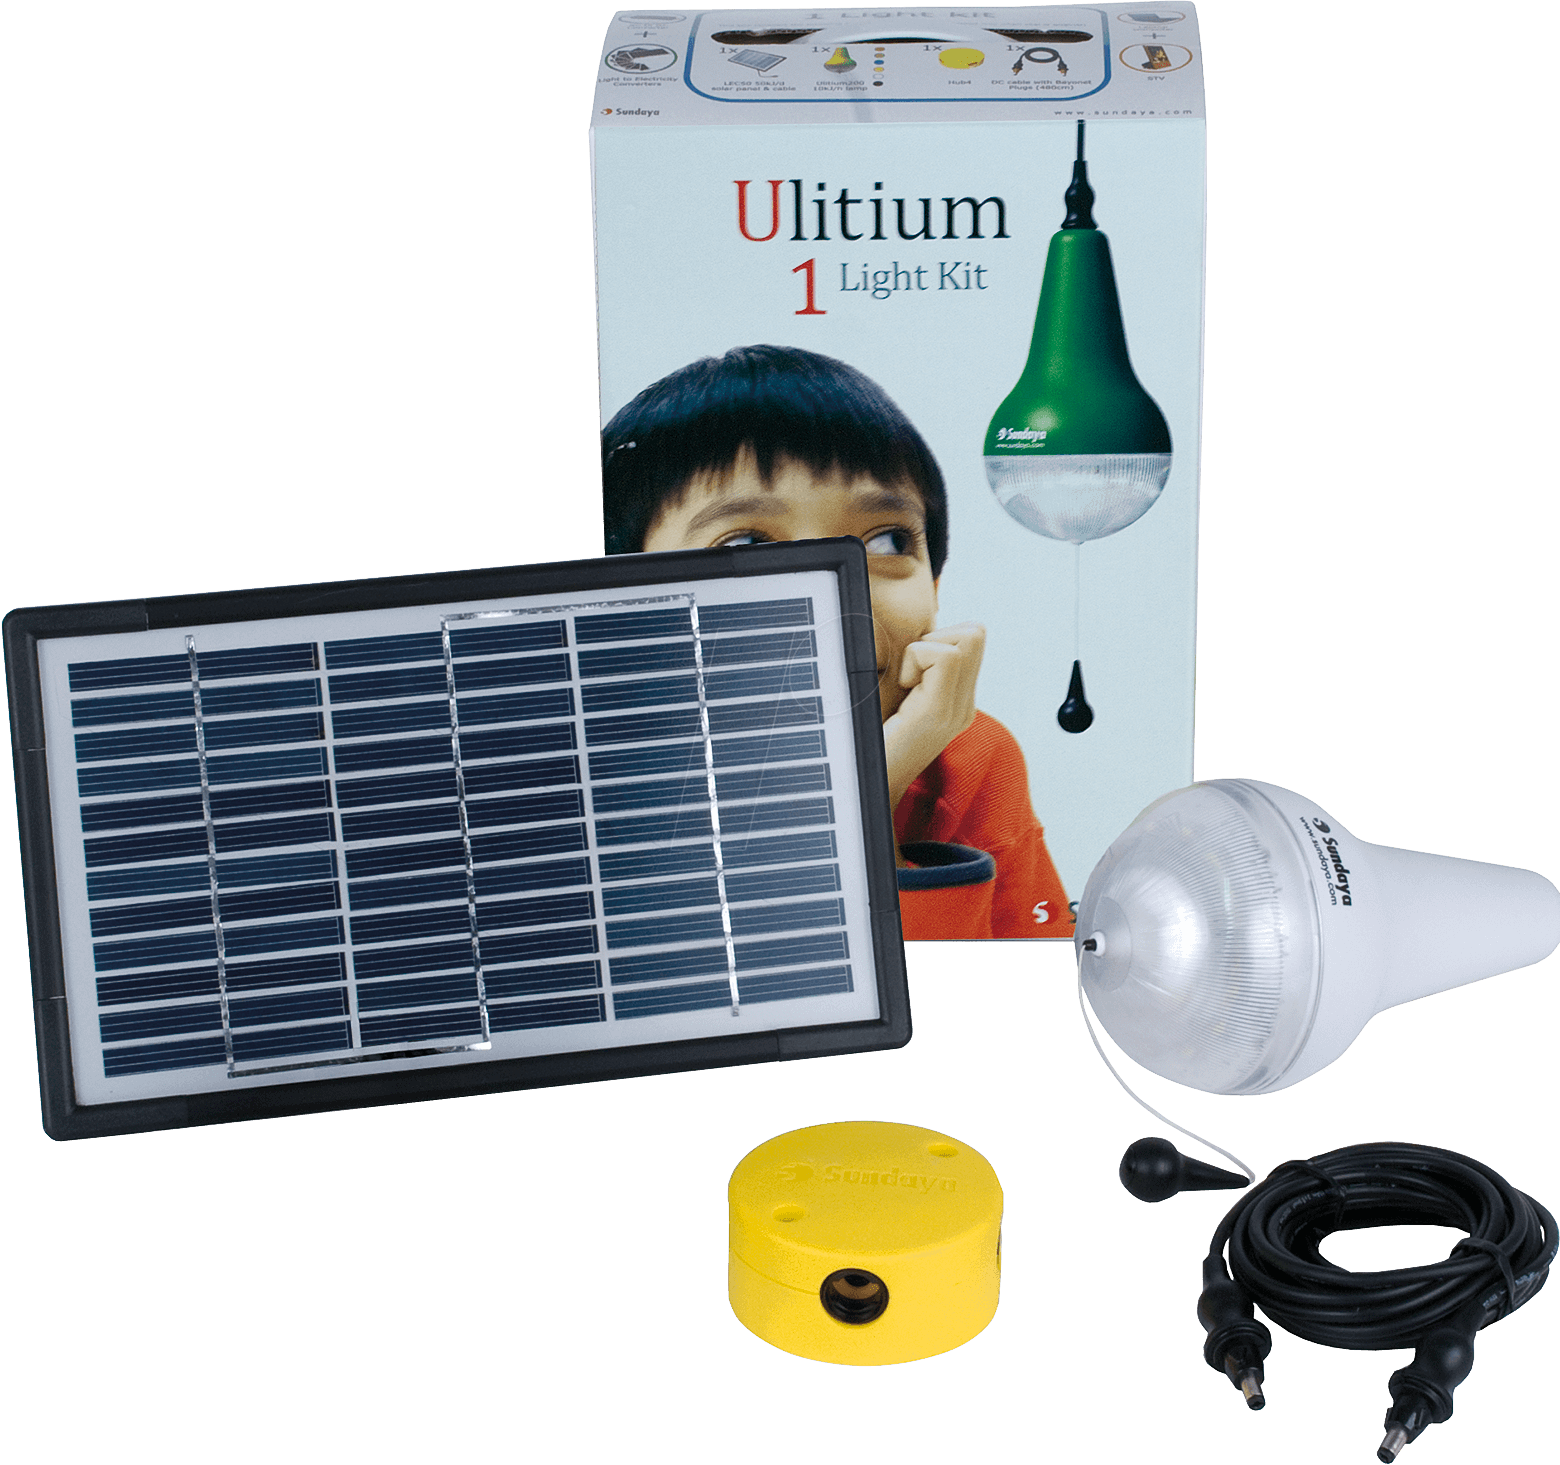 Sundaya 303205 Sundaya Ulitium Solar Light Kit, 1x 3 W At